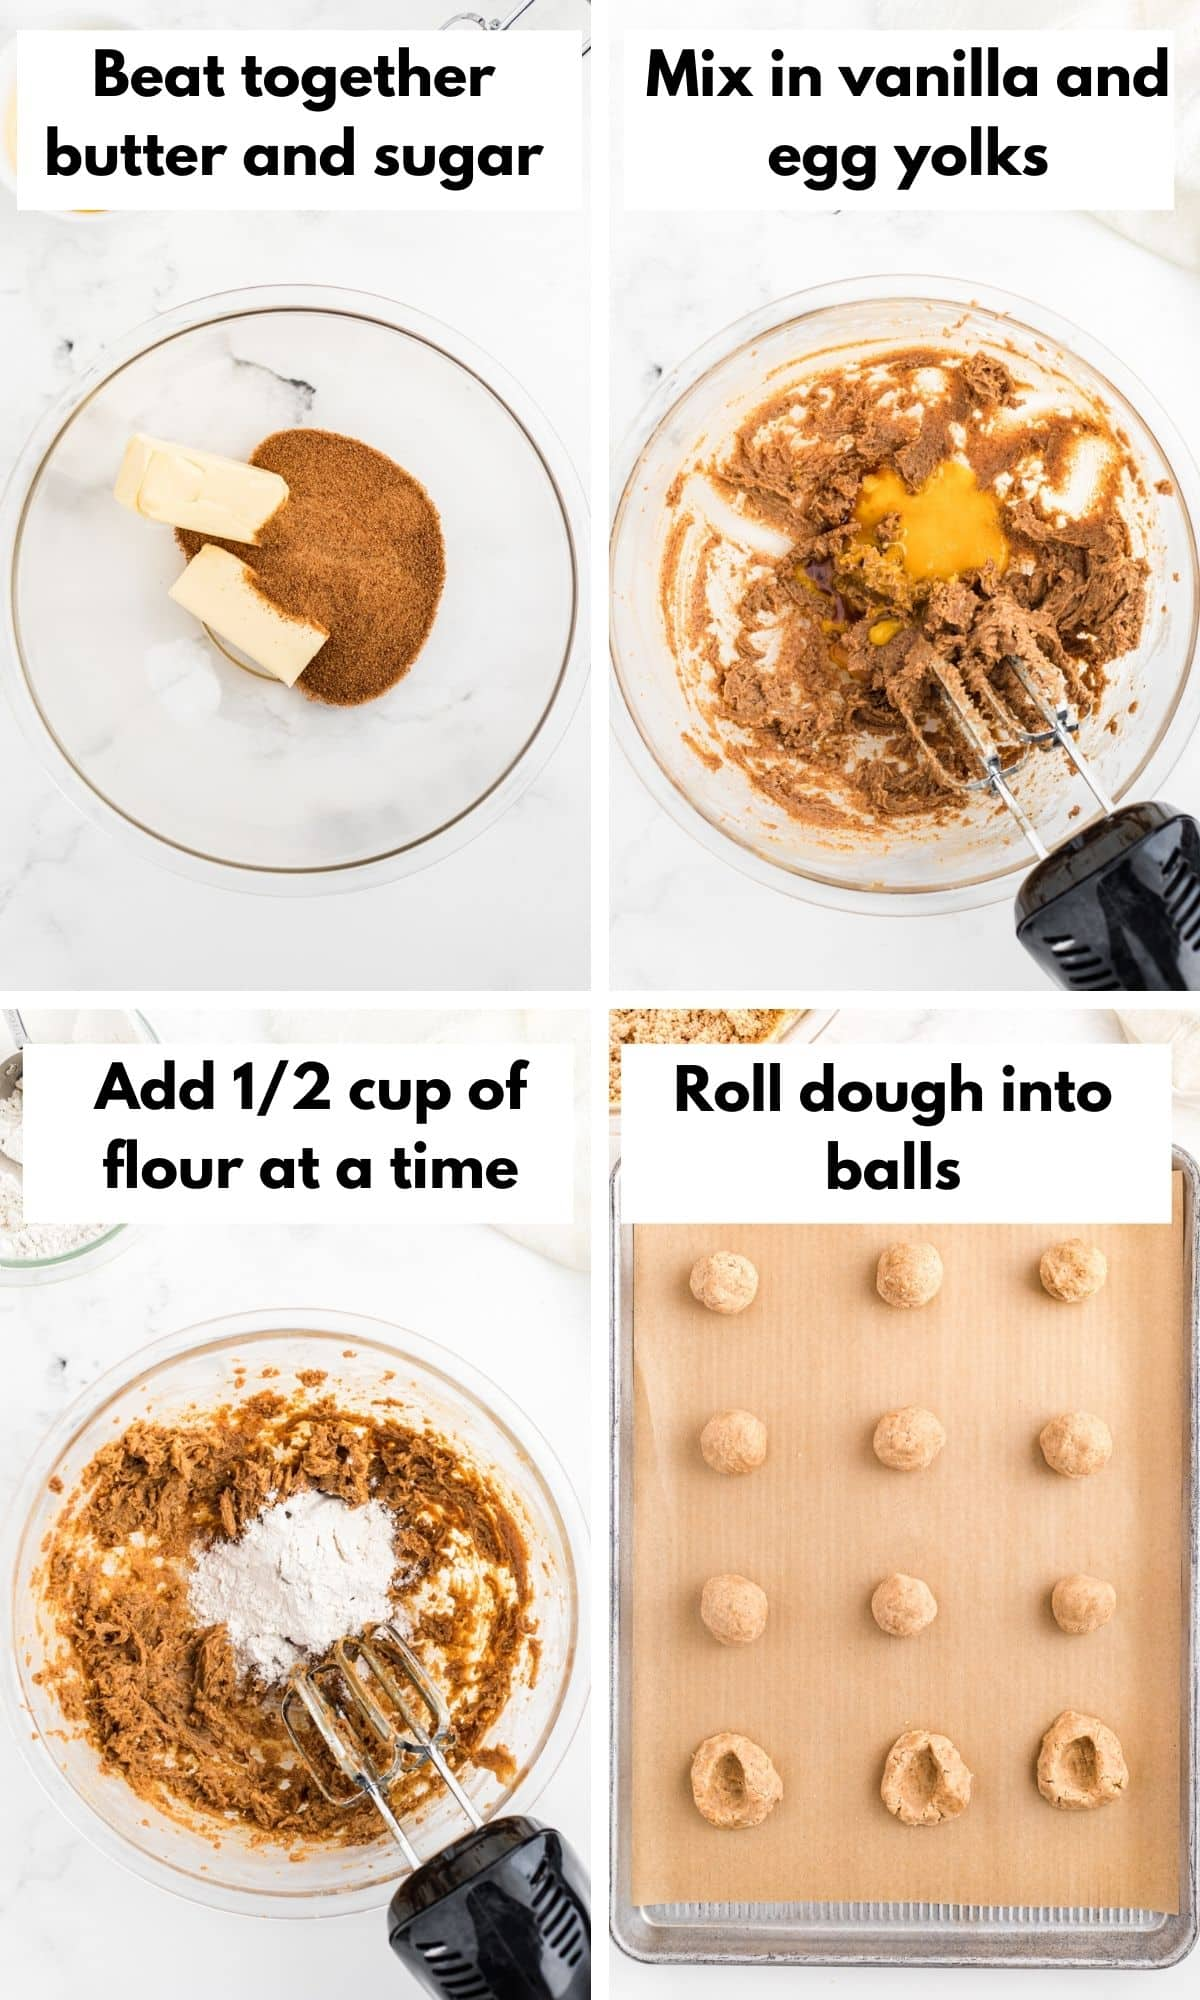 Pictures showing how to make thumbprint cookies